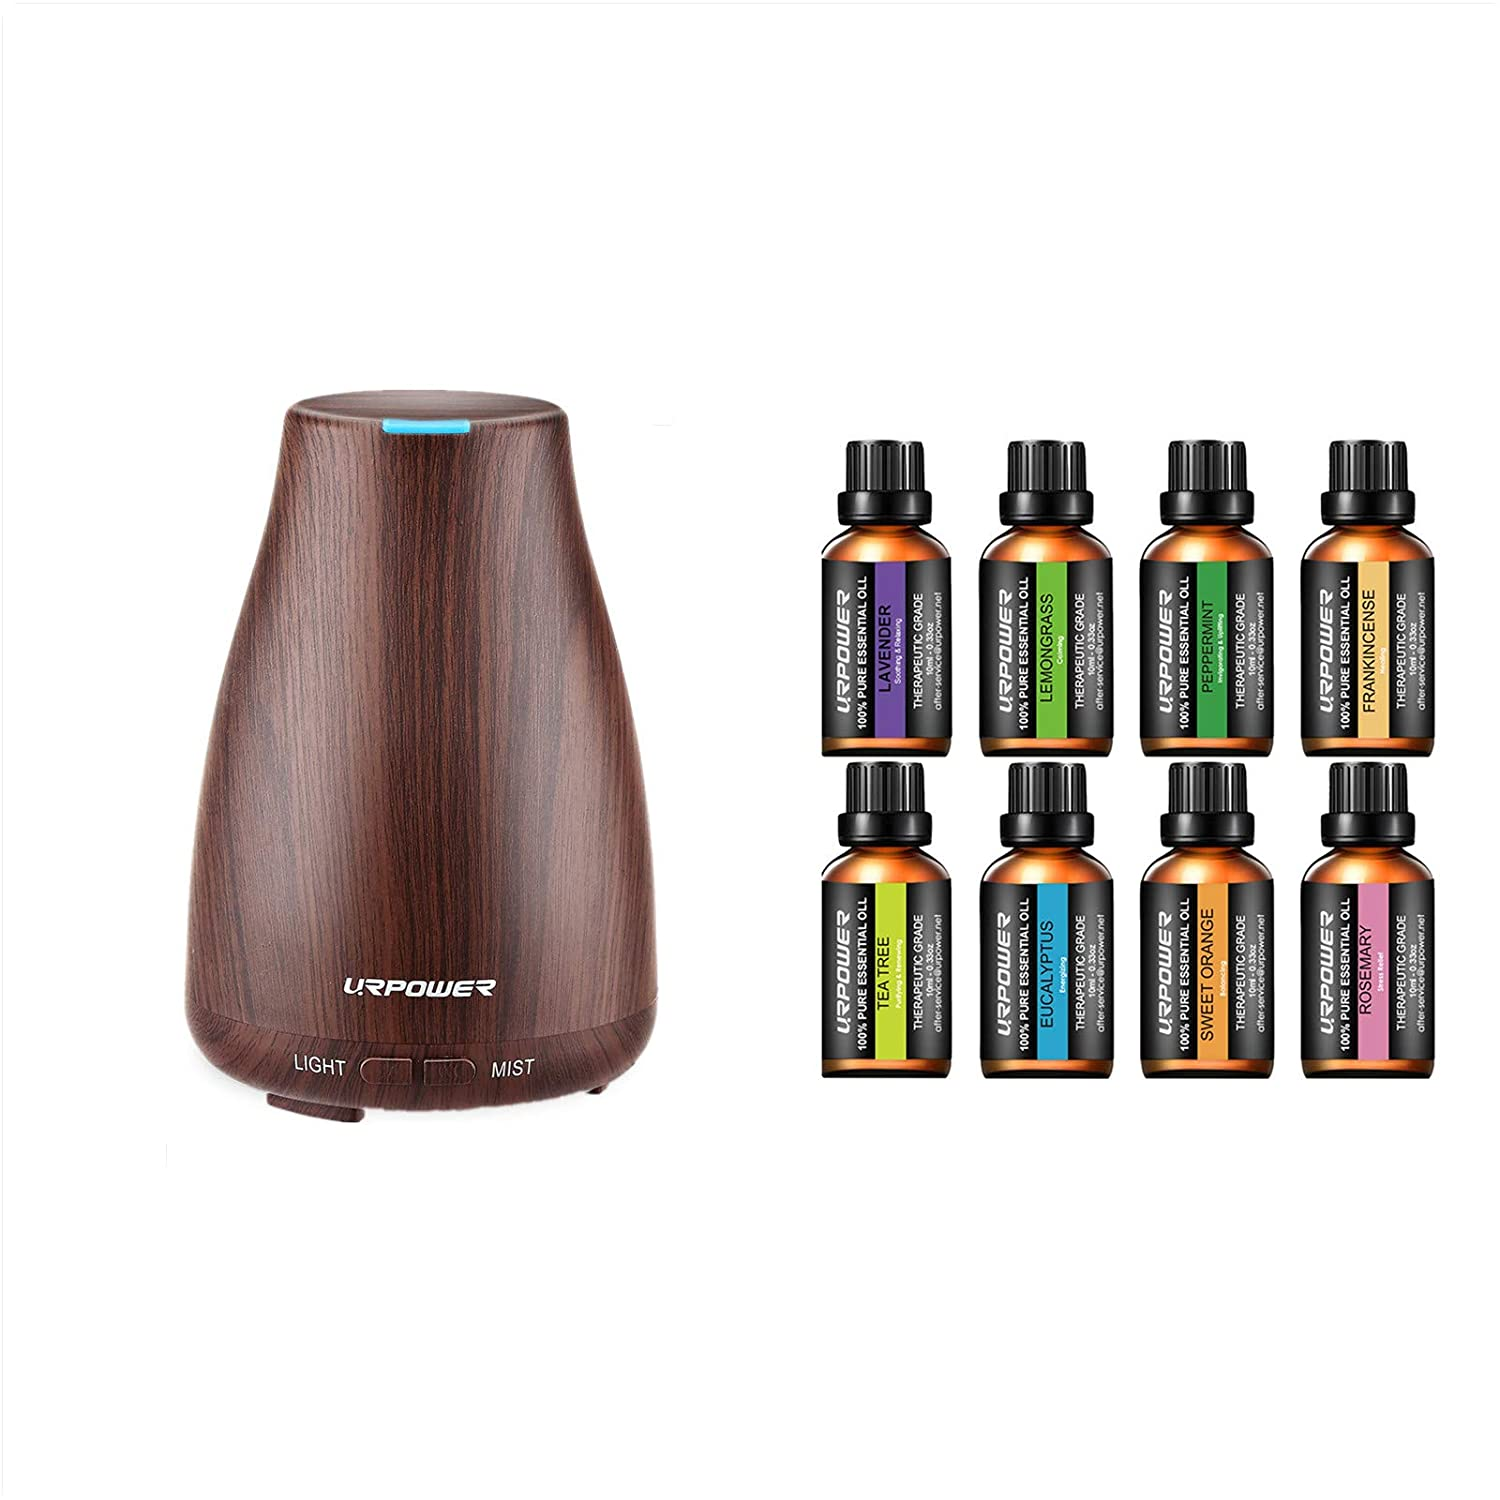 URPOWER 2nd Version Essential Oil Diffuser with 8 Aromatherapy Essential Oils 100% Pure Therapeutic Grade Essential Oils Set Lavender/Peppermint/Tea Tree/Orange/Eucalyptus/Lemongrass/Frankincense/Rose